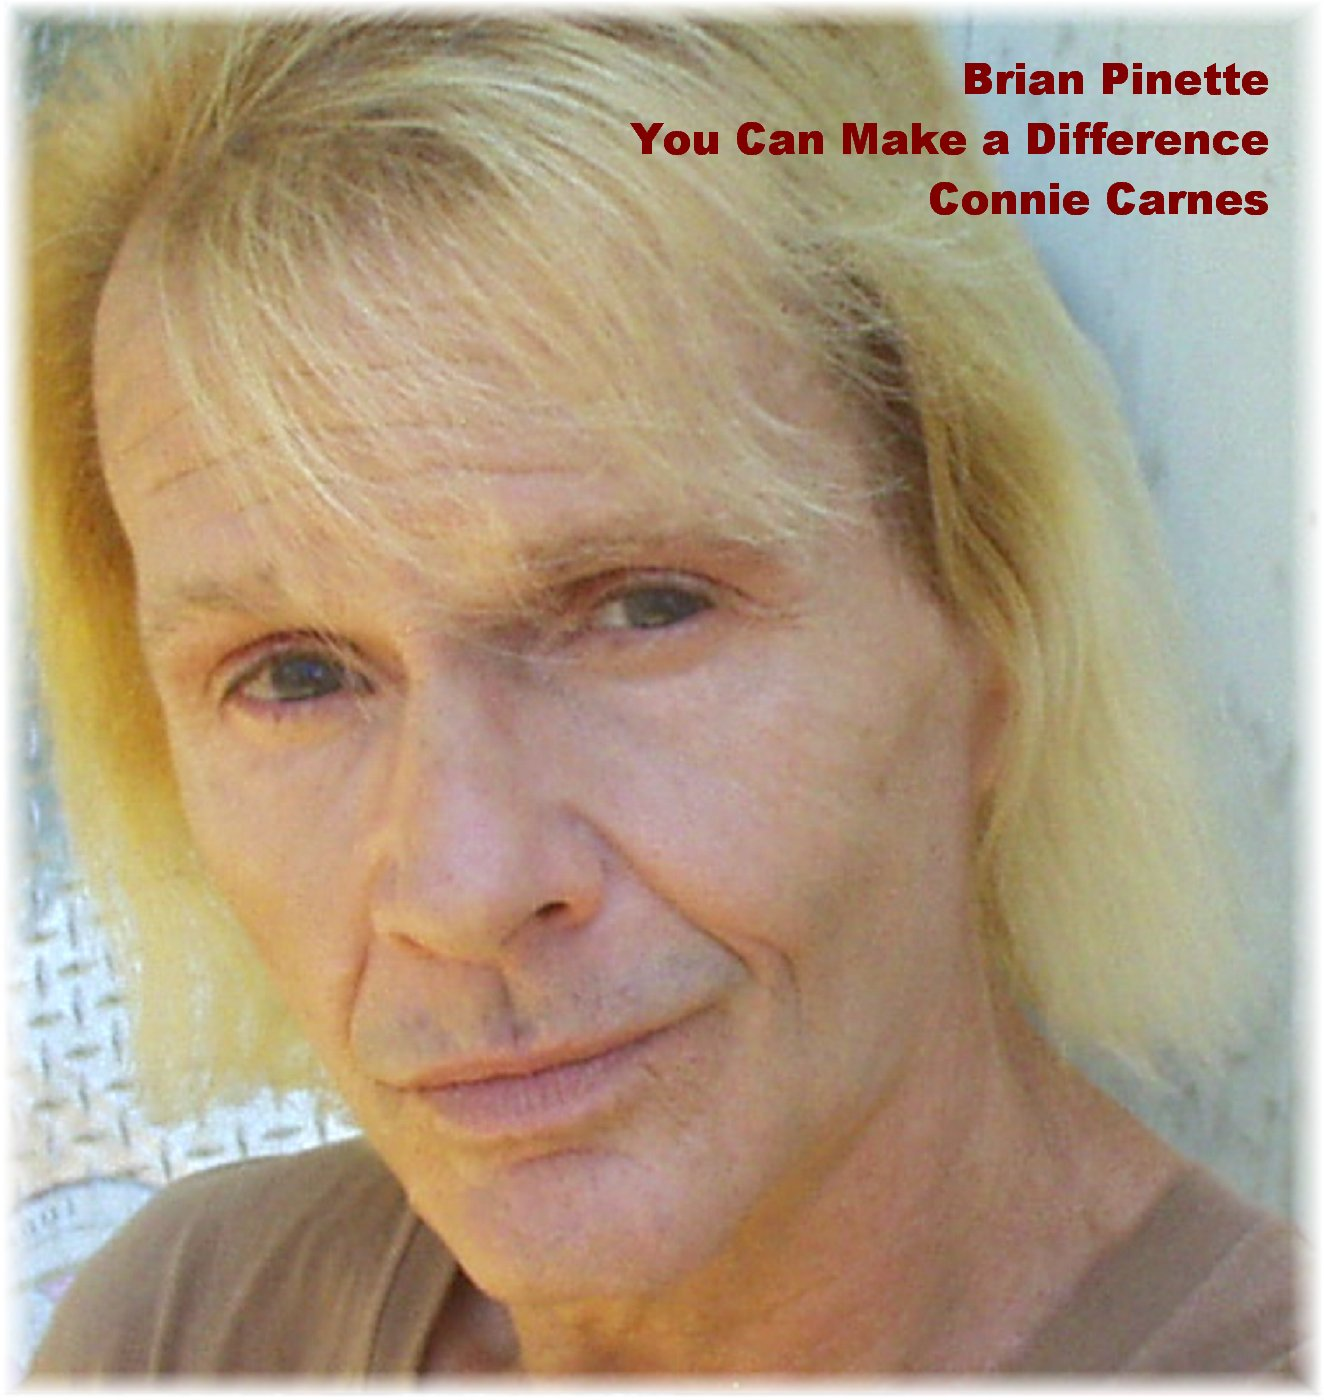 Brian Pinette sings You Can Make a Difference (feat. Connie Carnes)